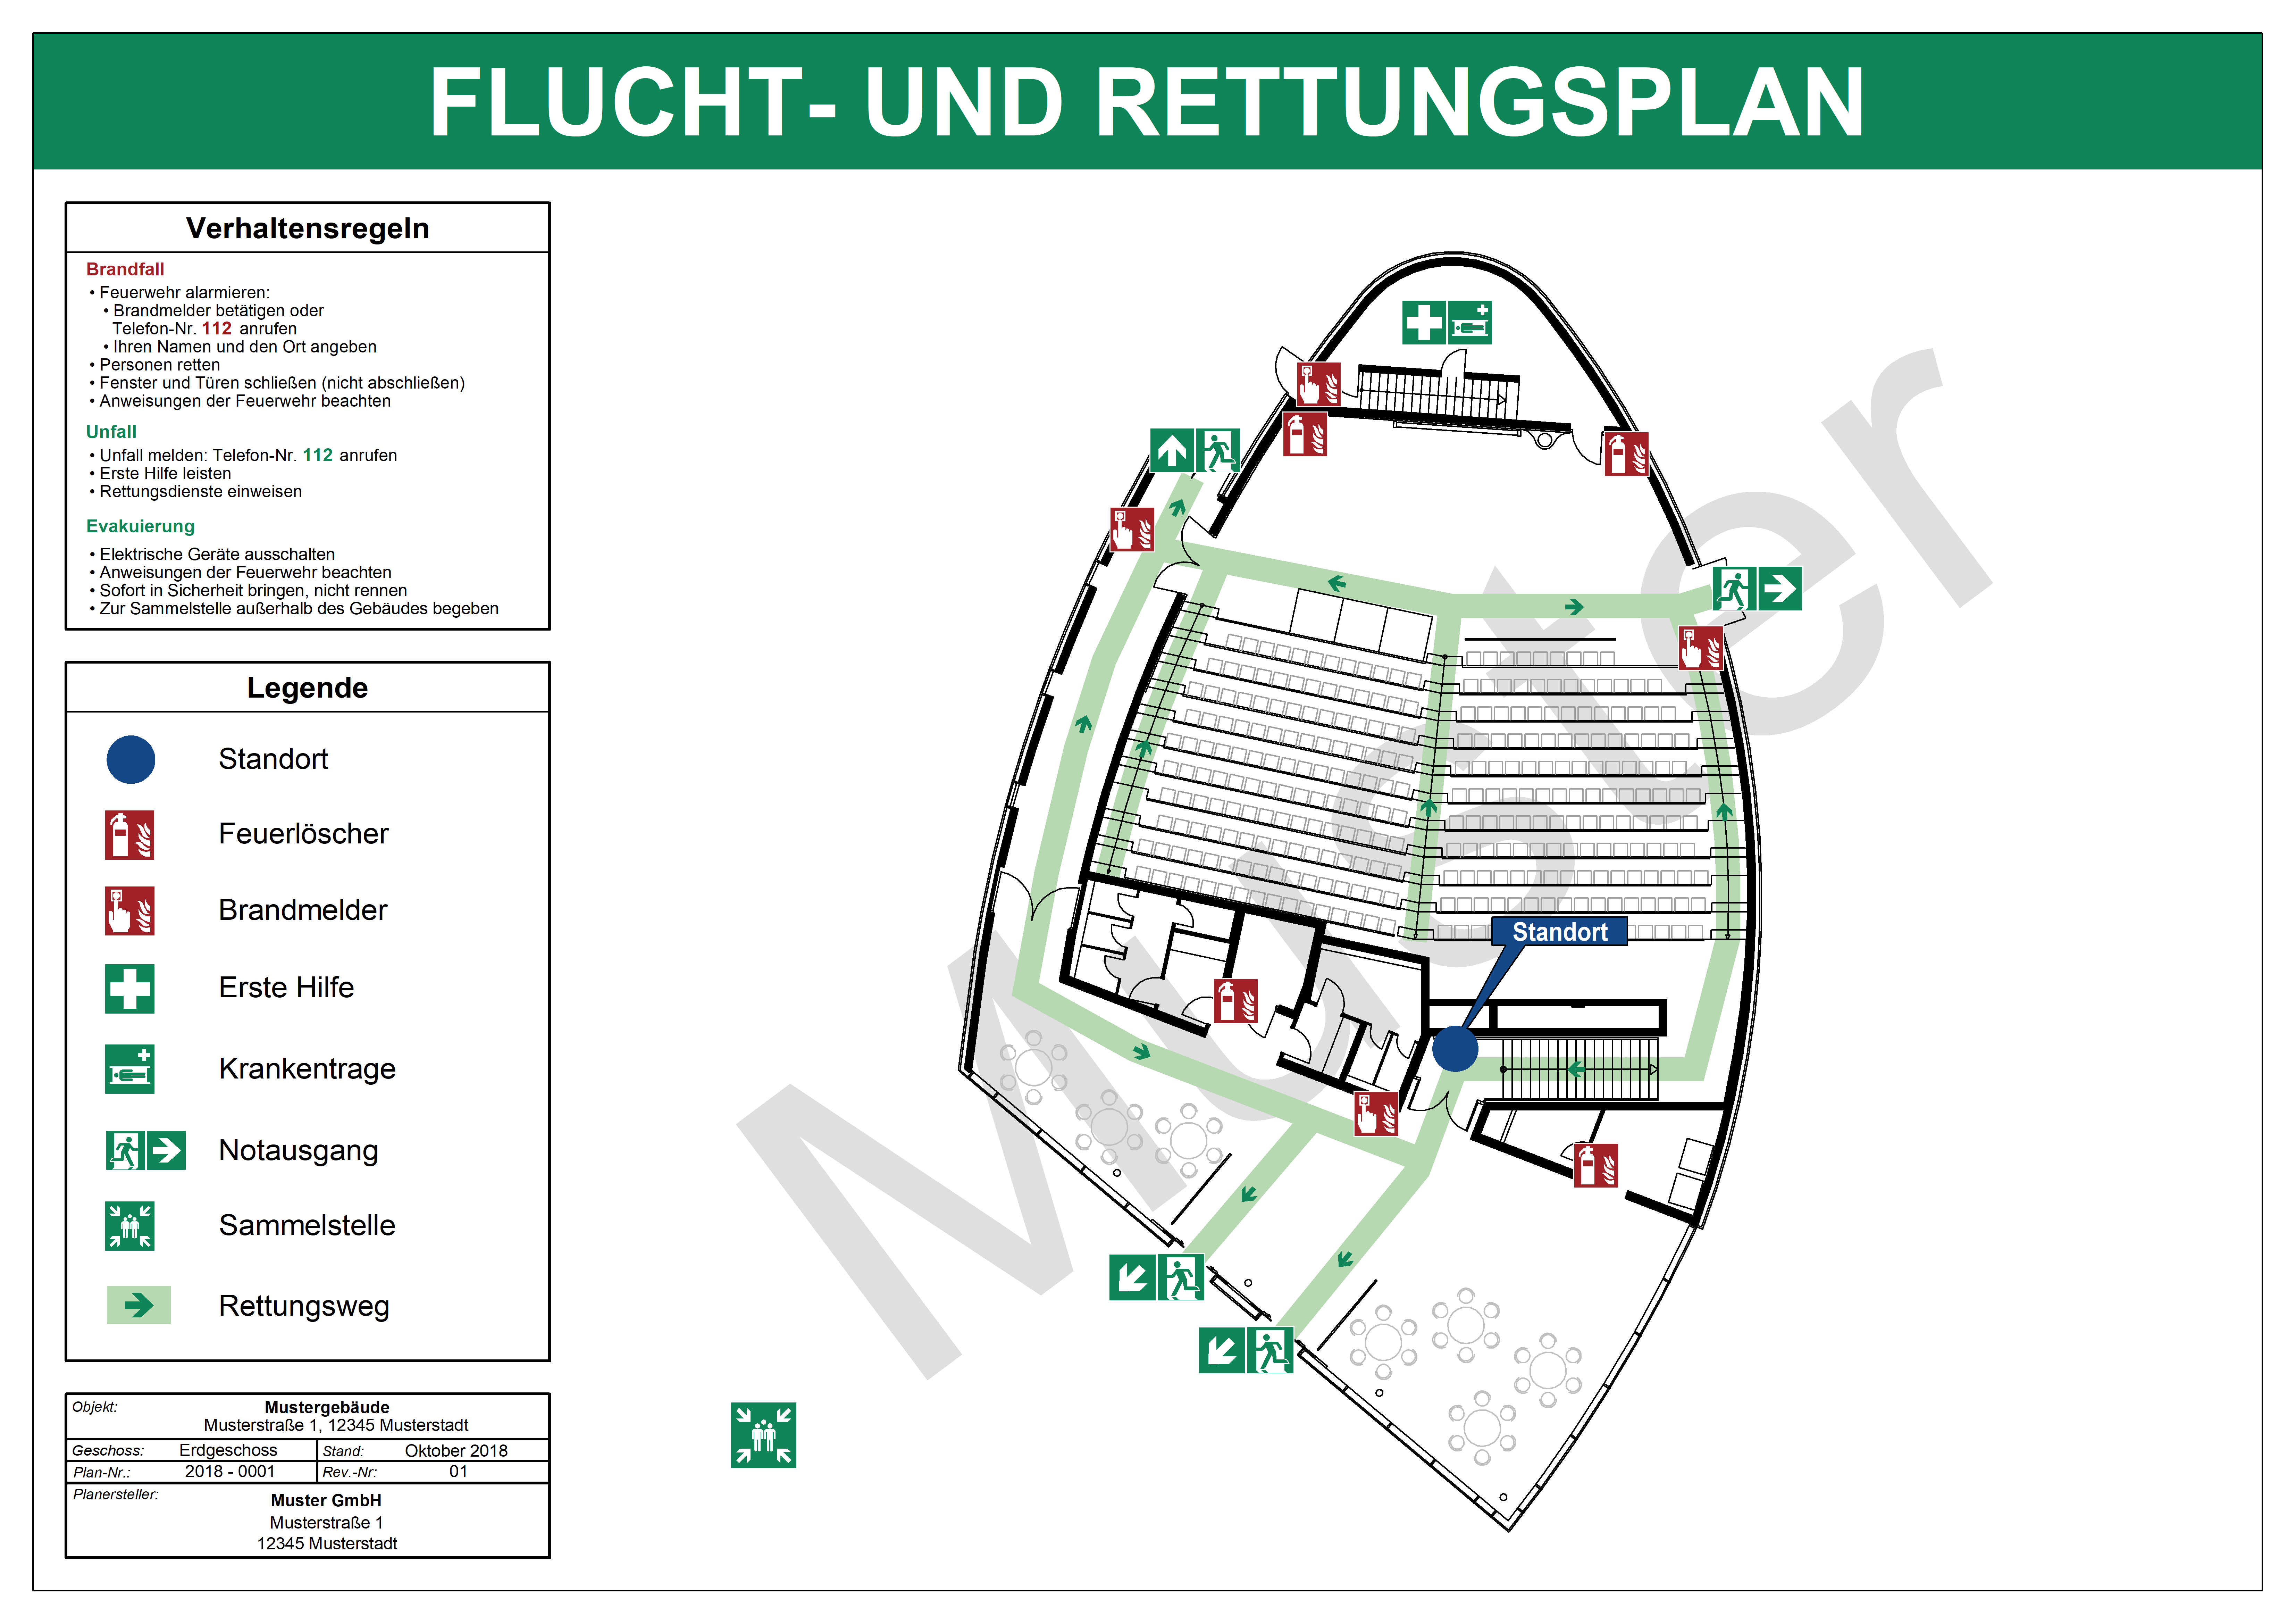 File Flucht Und Rettungsplan Din Iso 23601 Muster Png Wikimedia Commons